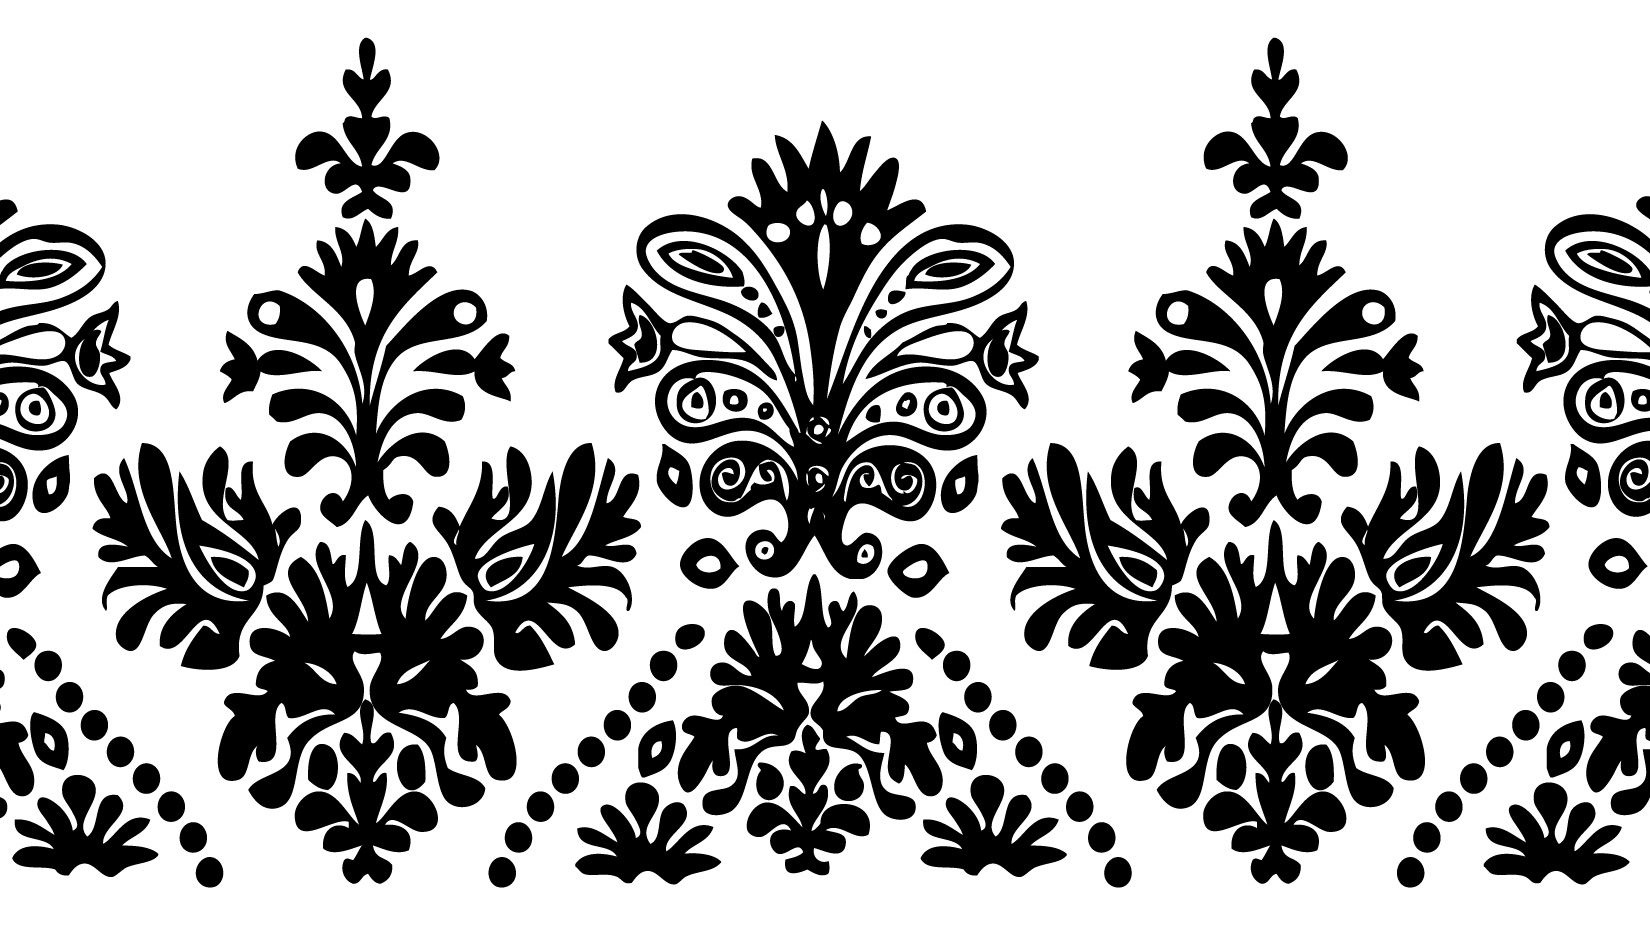 Free Printable Stencils For Painting   Stencils Designs Free - Free Printable Stencils